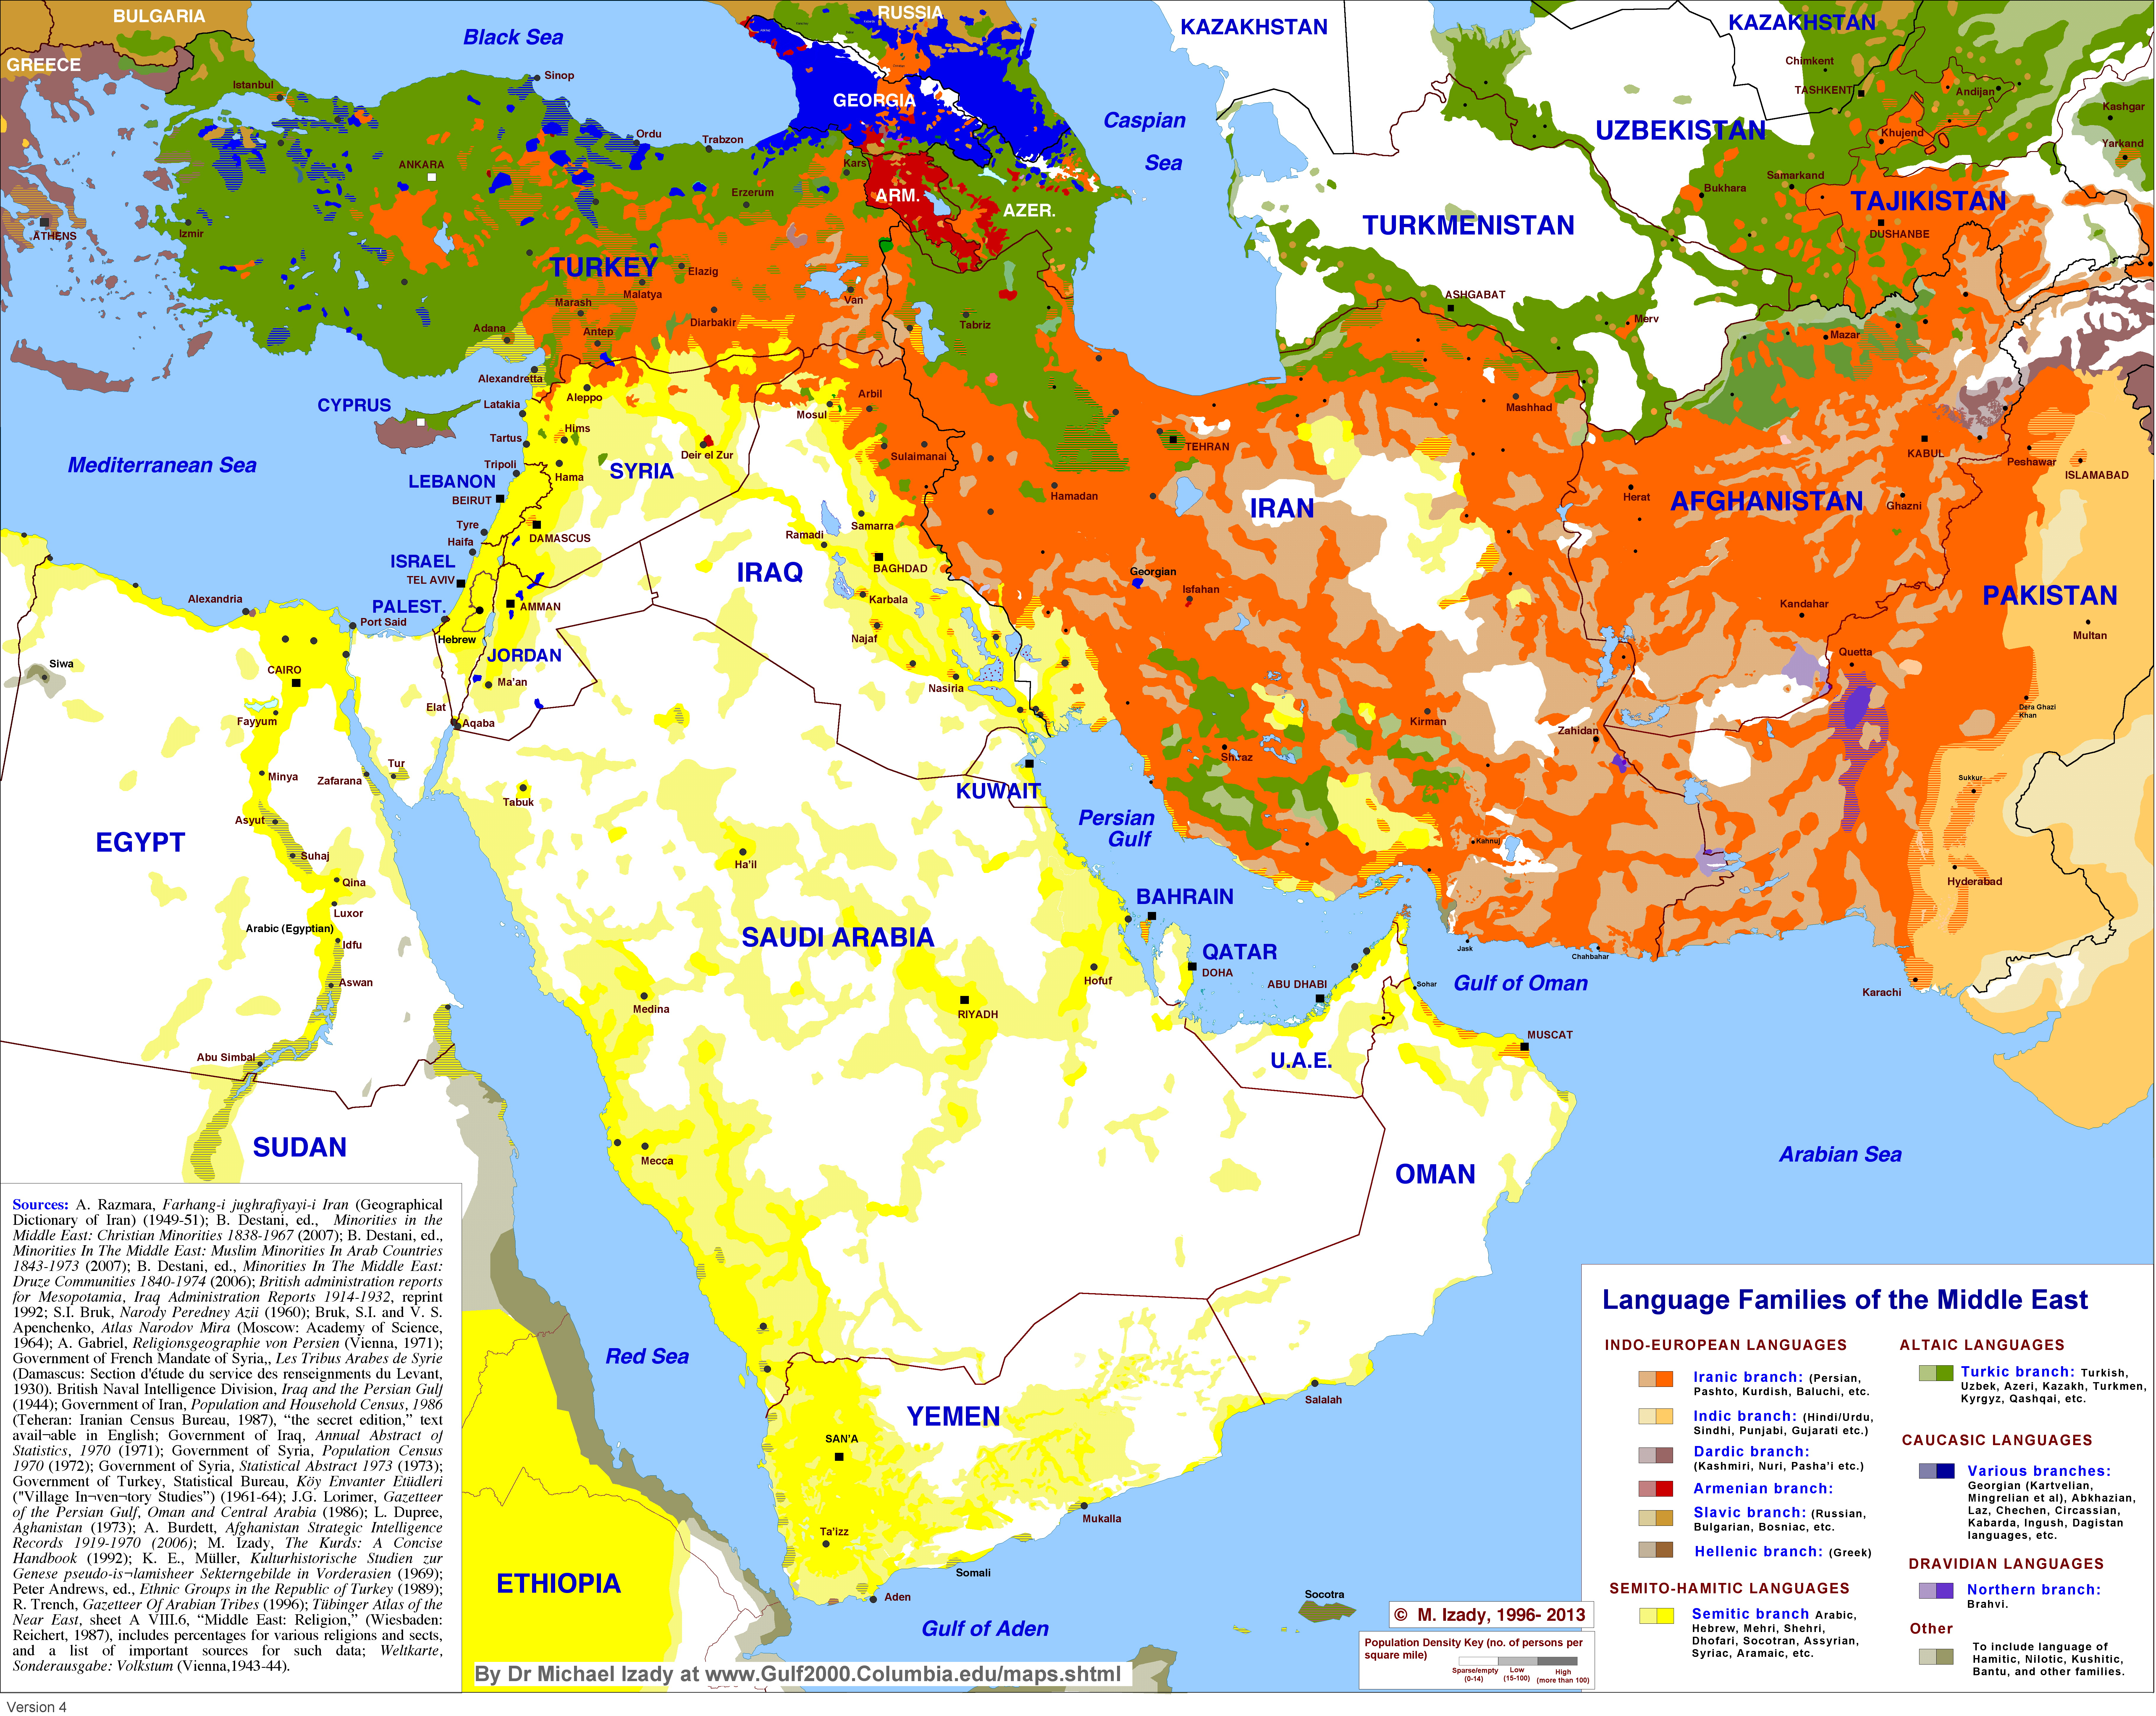 Language families of the middle east vivid maps language families of the meadle east publicscrutiny Images